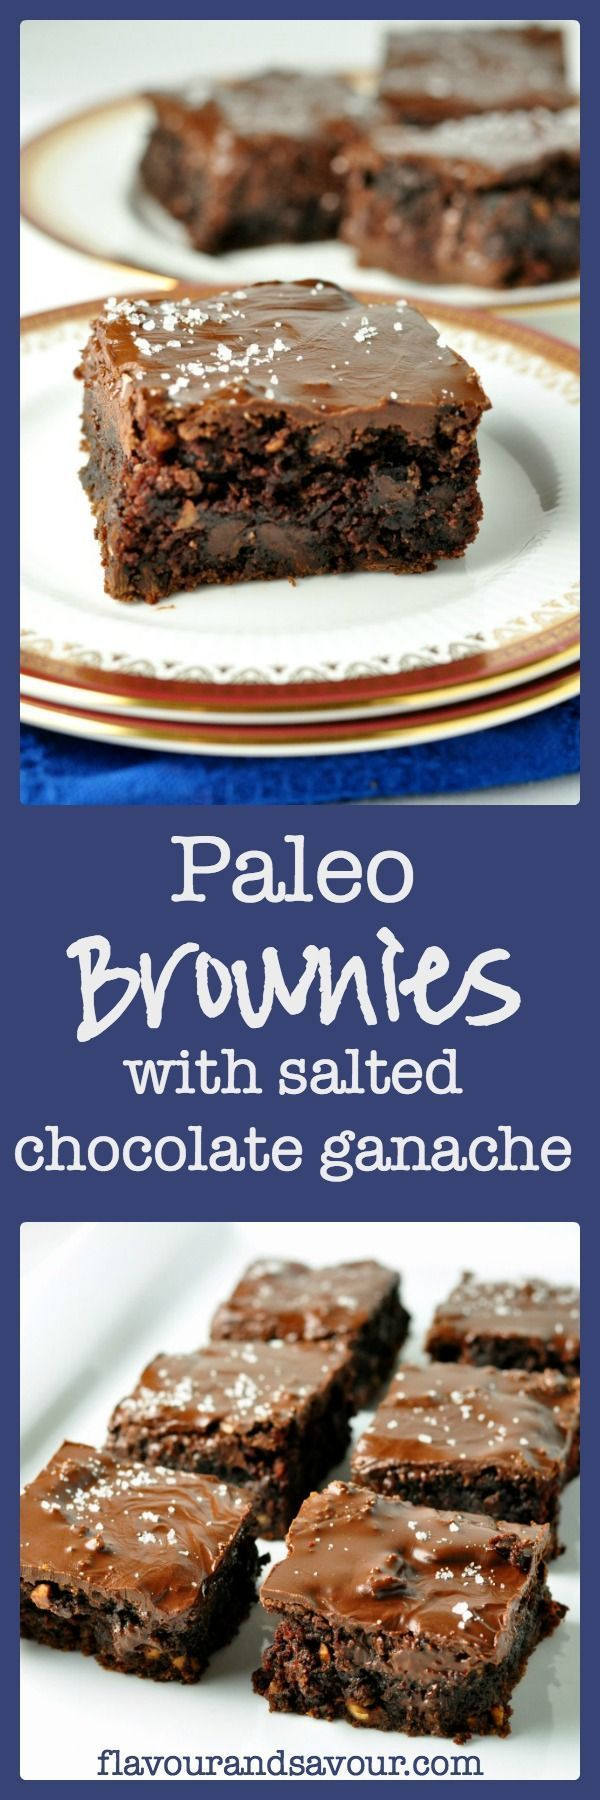 Paleo Brownies with Salted Chocolate Ganache. A fudgy but cake-like brownie topped with an easy-to-make salted chocolate ganache. Paleo!